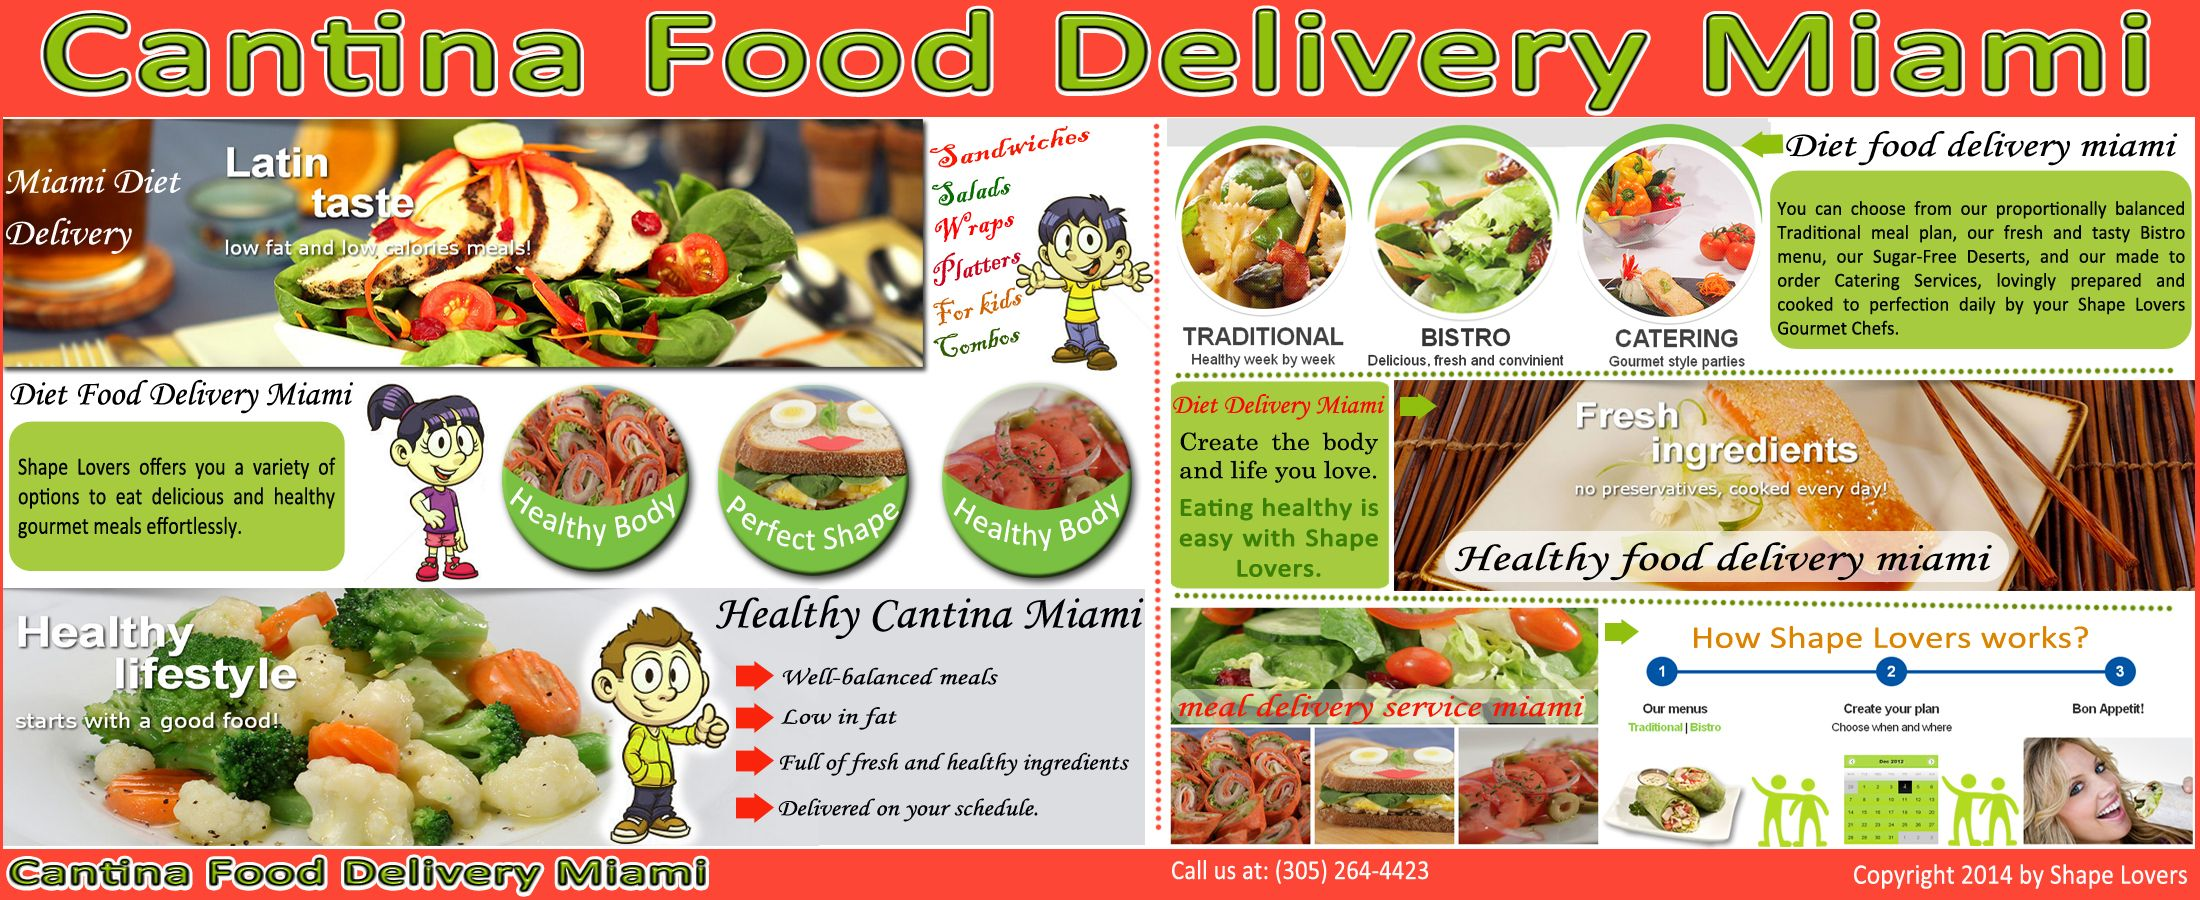 Visit Our Site Https Www Shapelovers Com For More Information On Cantina Food Delivery Miami Healthy Diet Meal Delivery Healthy Recipes Healthy Food Delivery